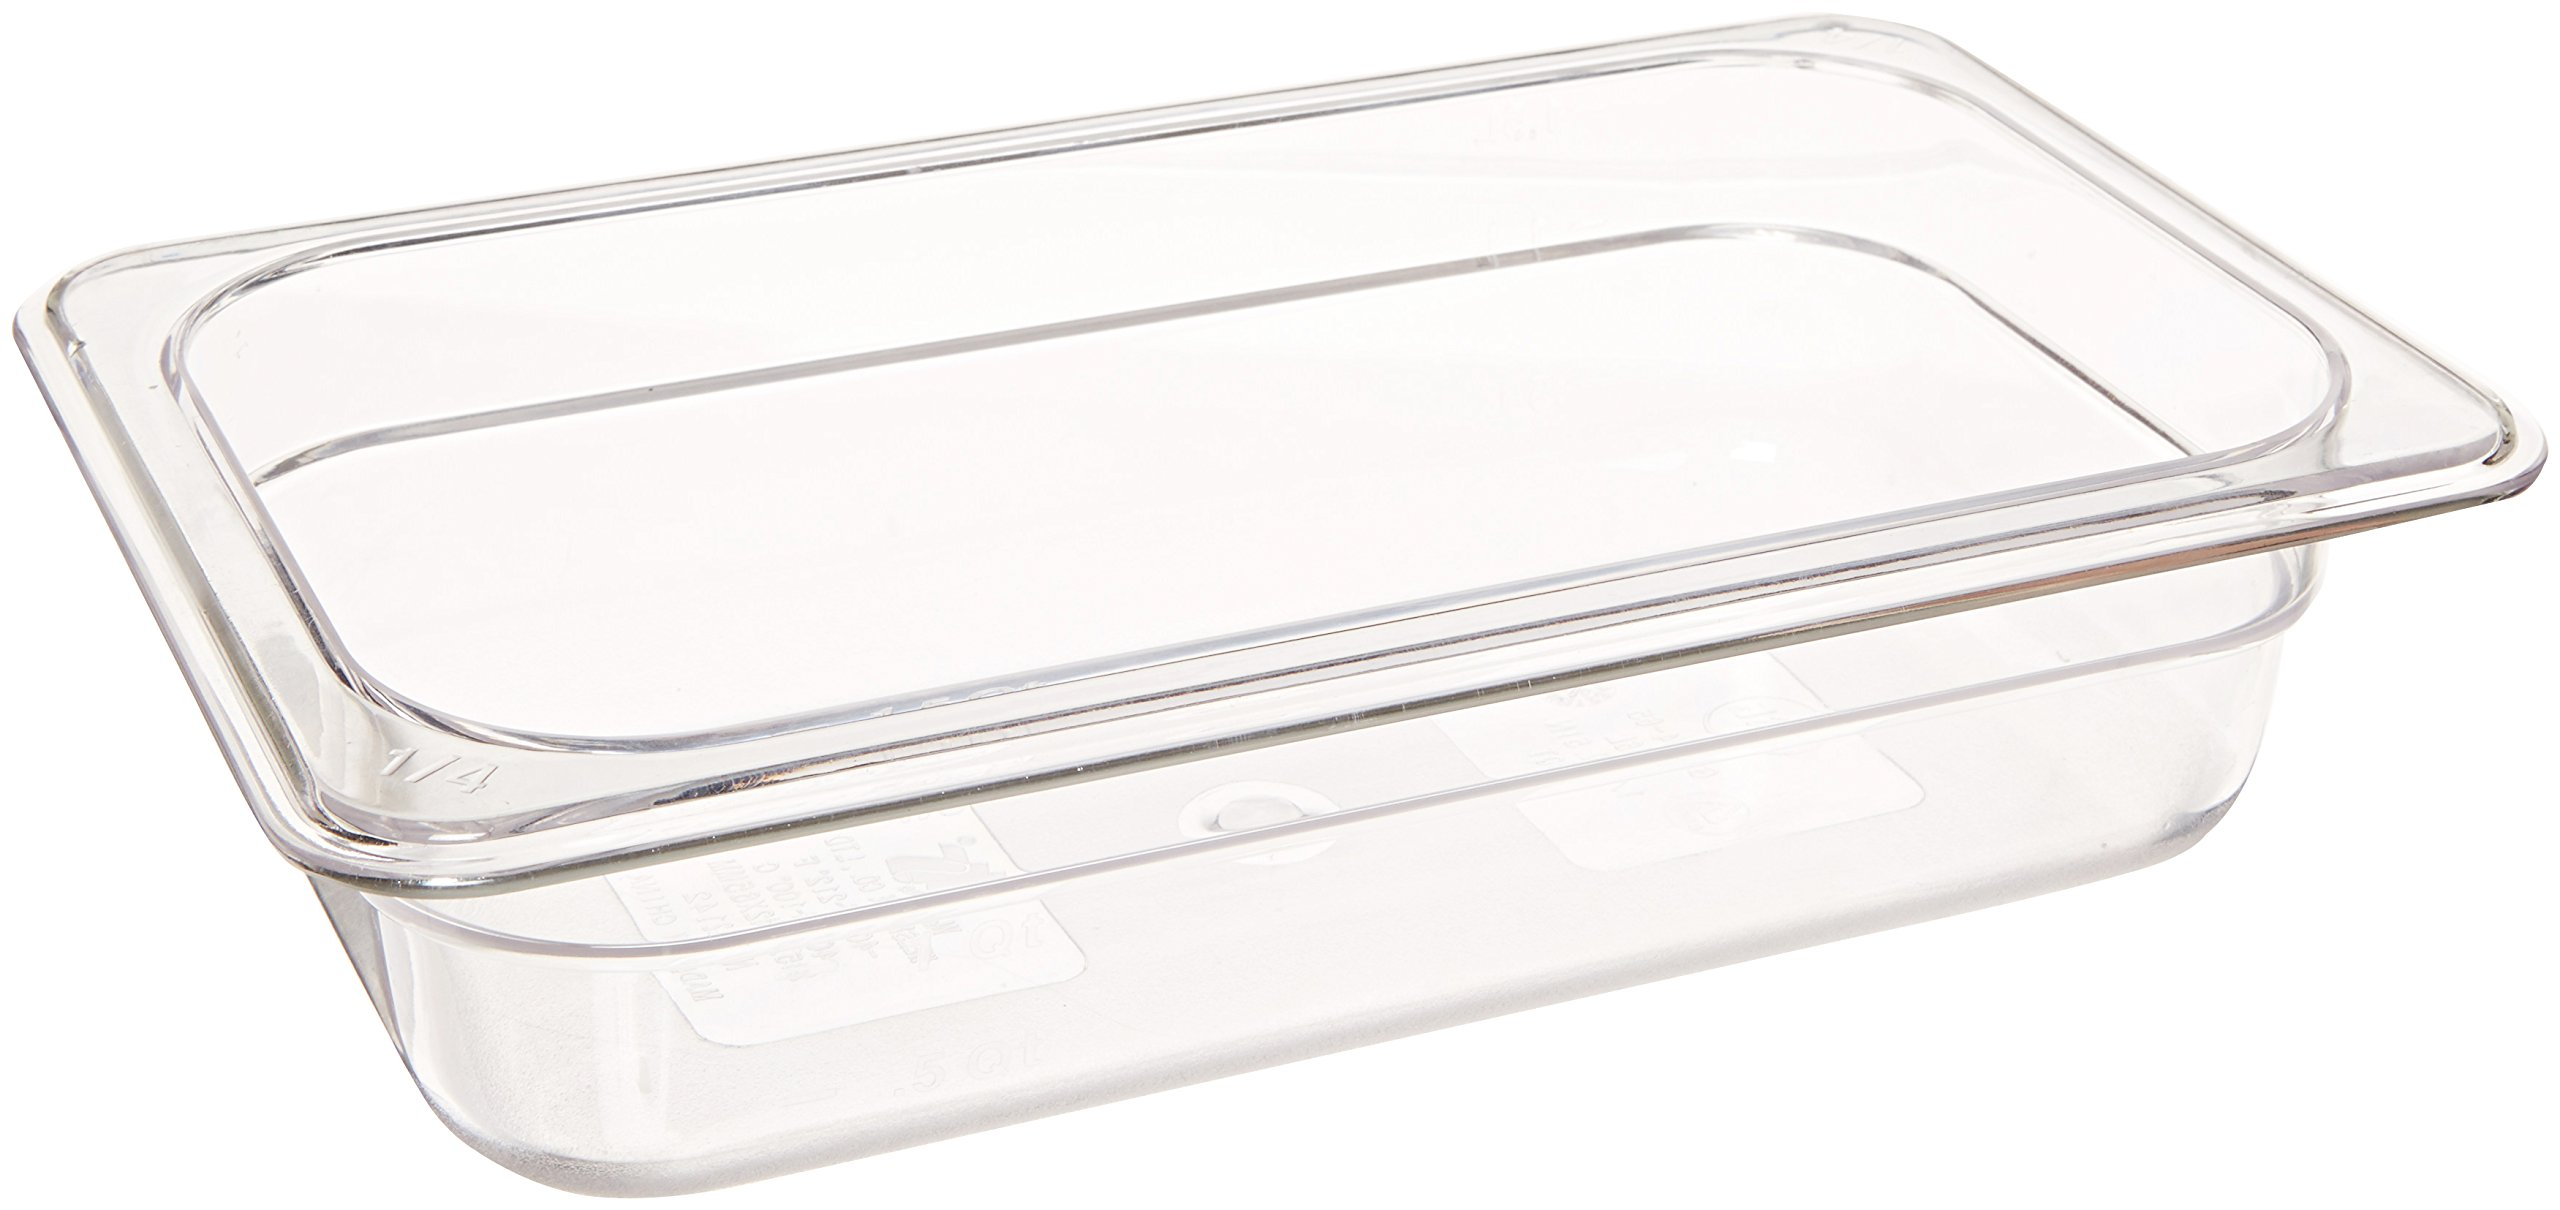 Crestware Polycarbonate Food Pan Fourth Size 2-1/2-Inch